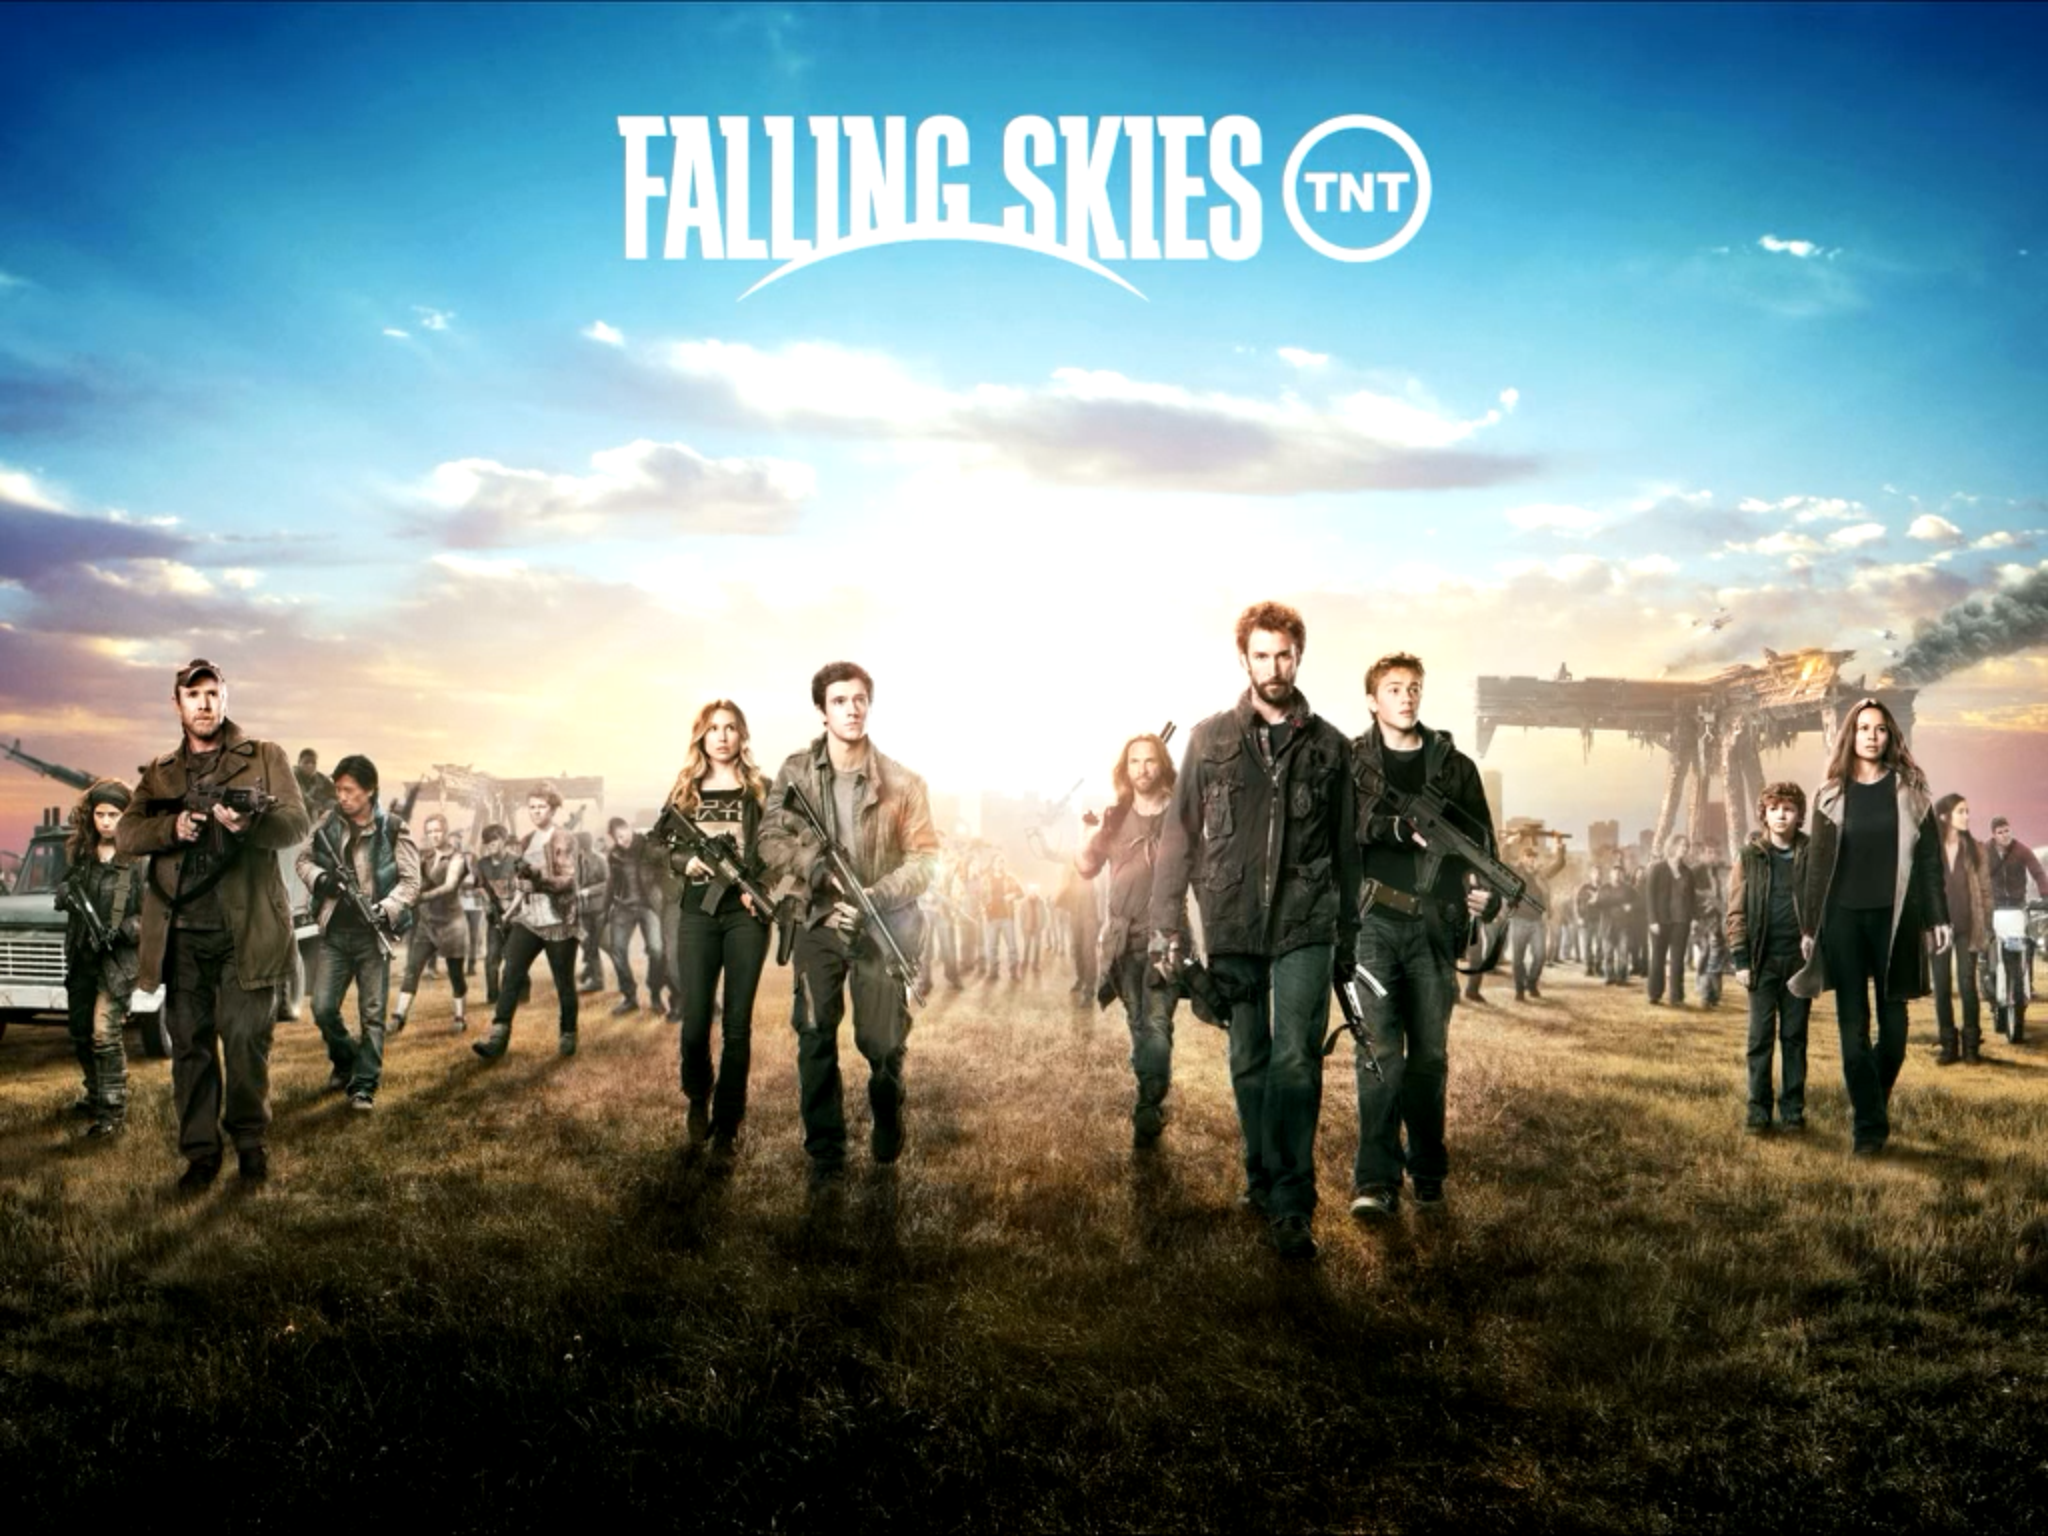 Matty P Presents Saturday Morning Cereal Episode 11- Falling Skies